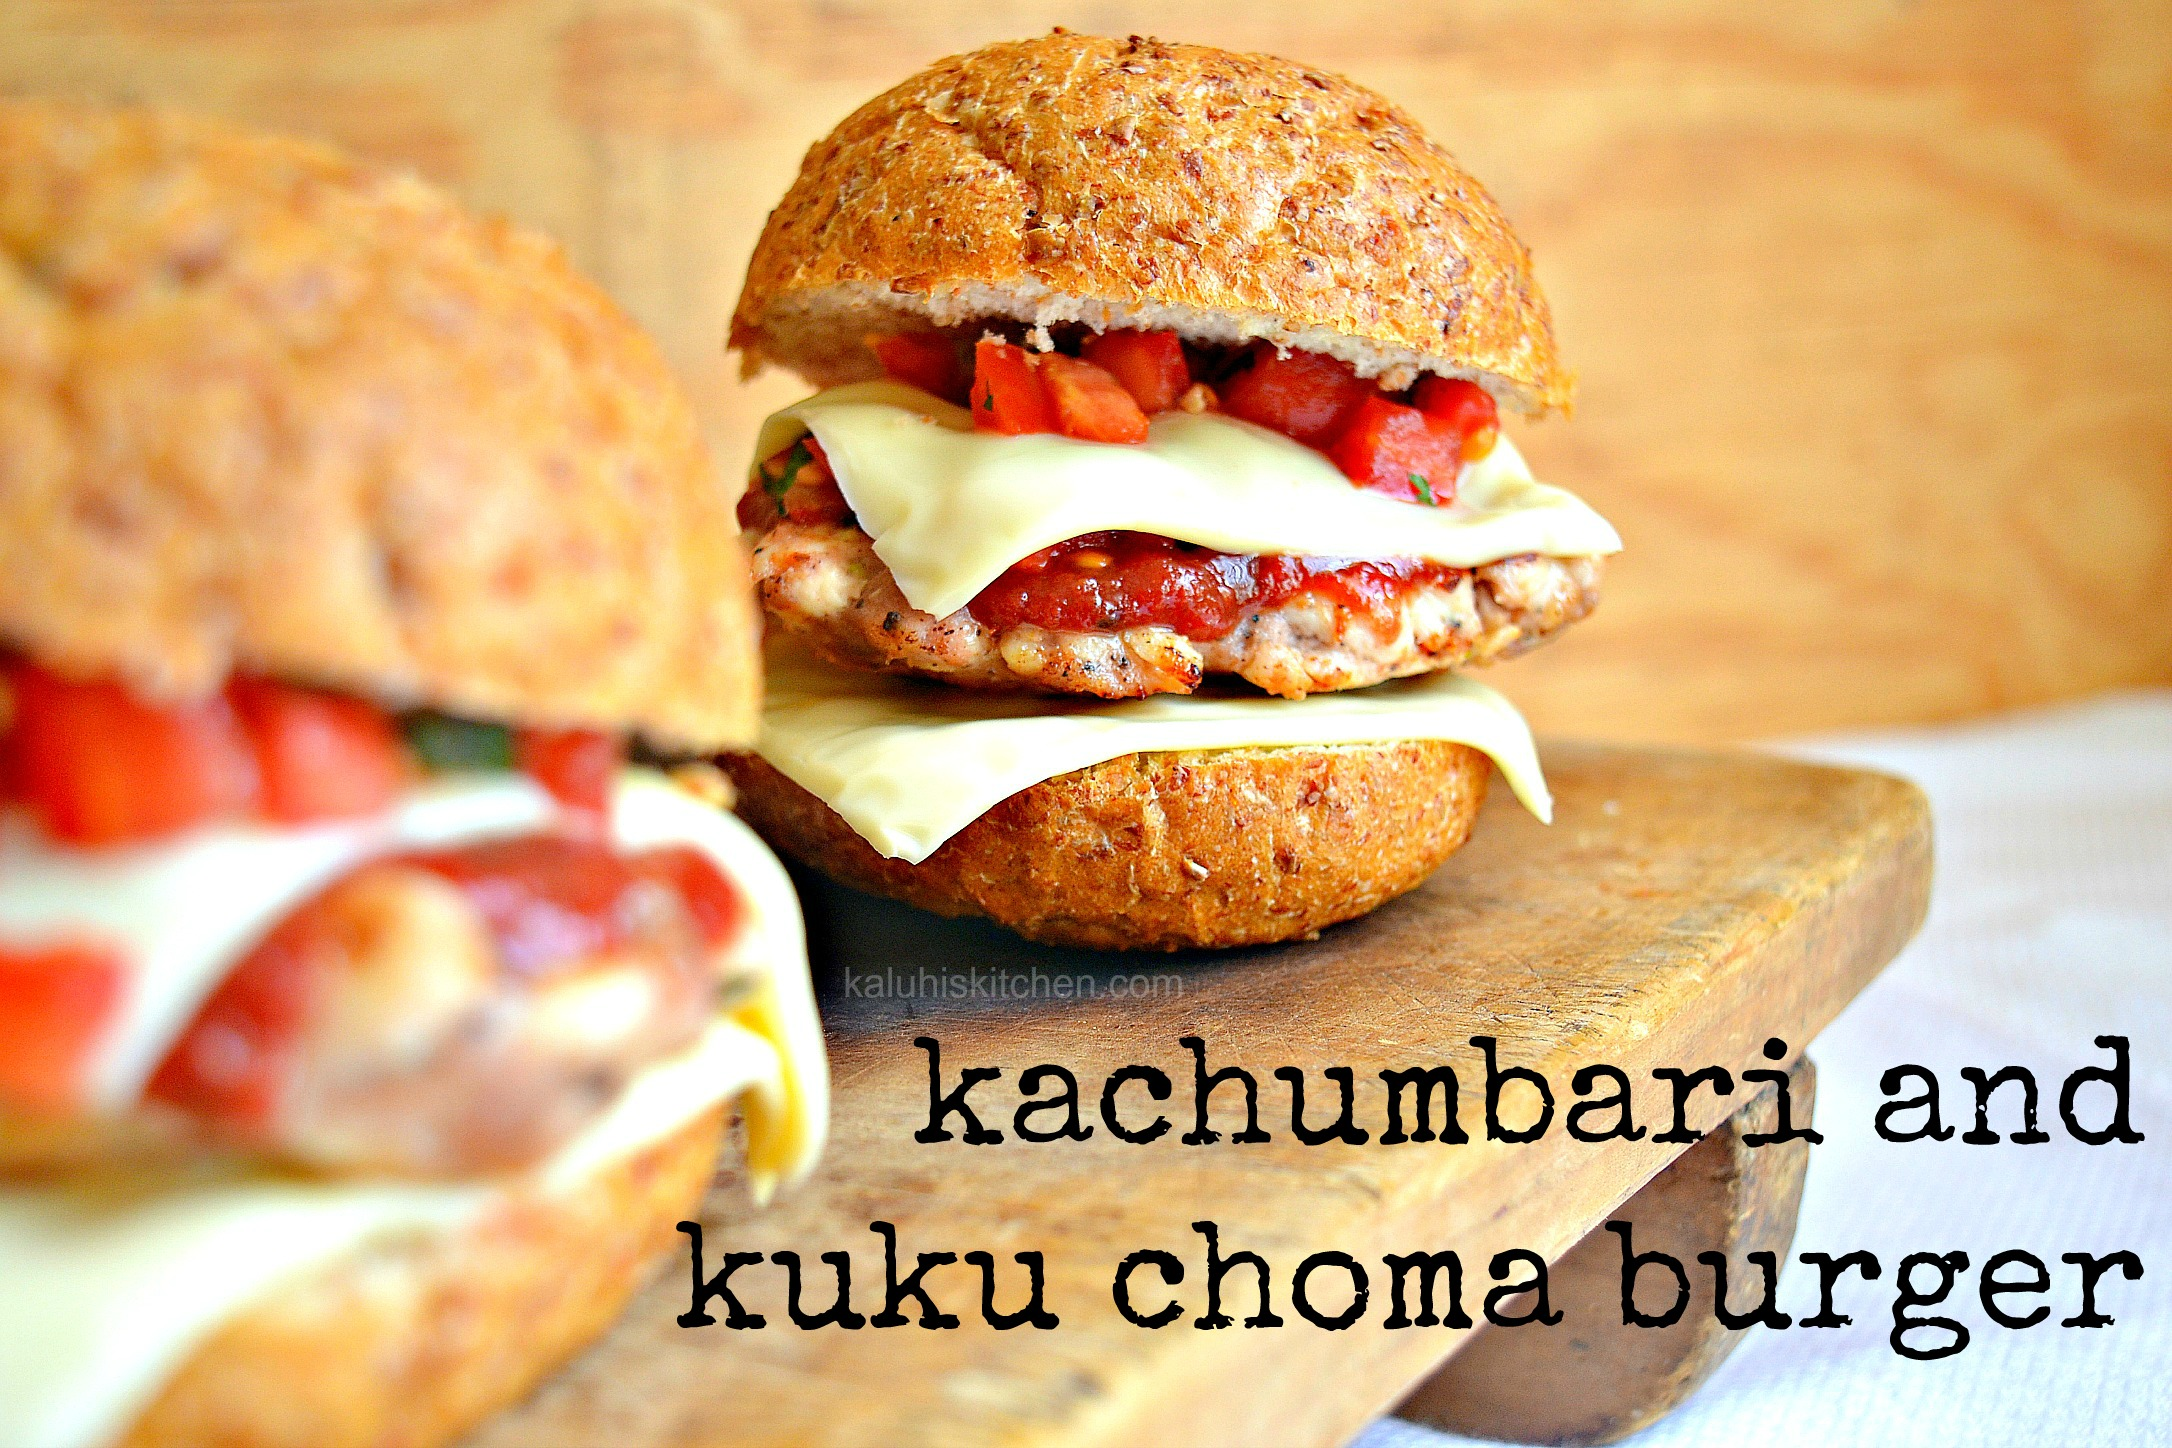 kalchumbari and kuku choma burger_kenyan food bloggers_food bloggers in kenya_kachumbari and kukuchomaburger by kaluhiskitchen.com